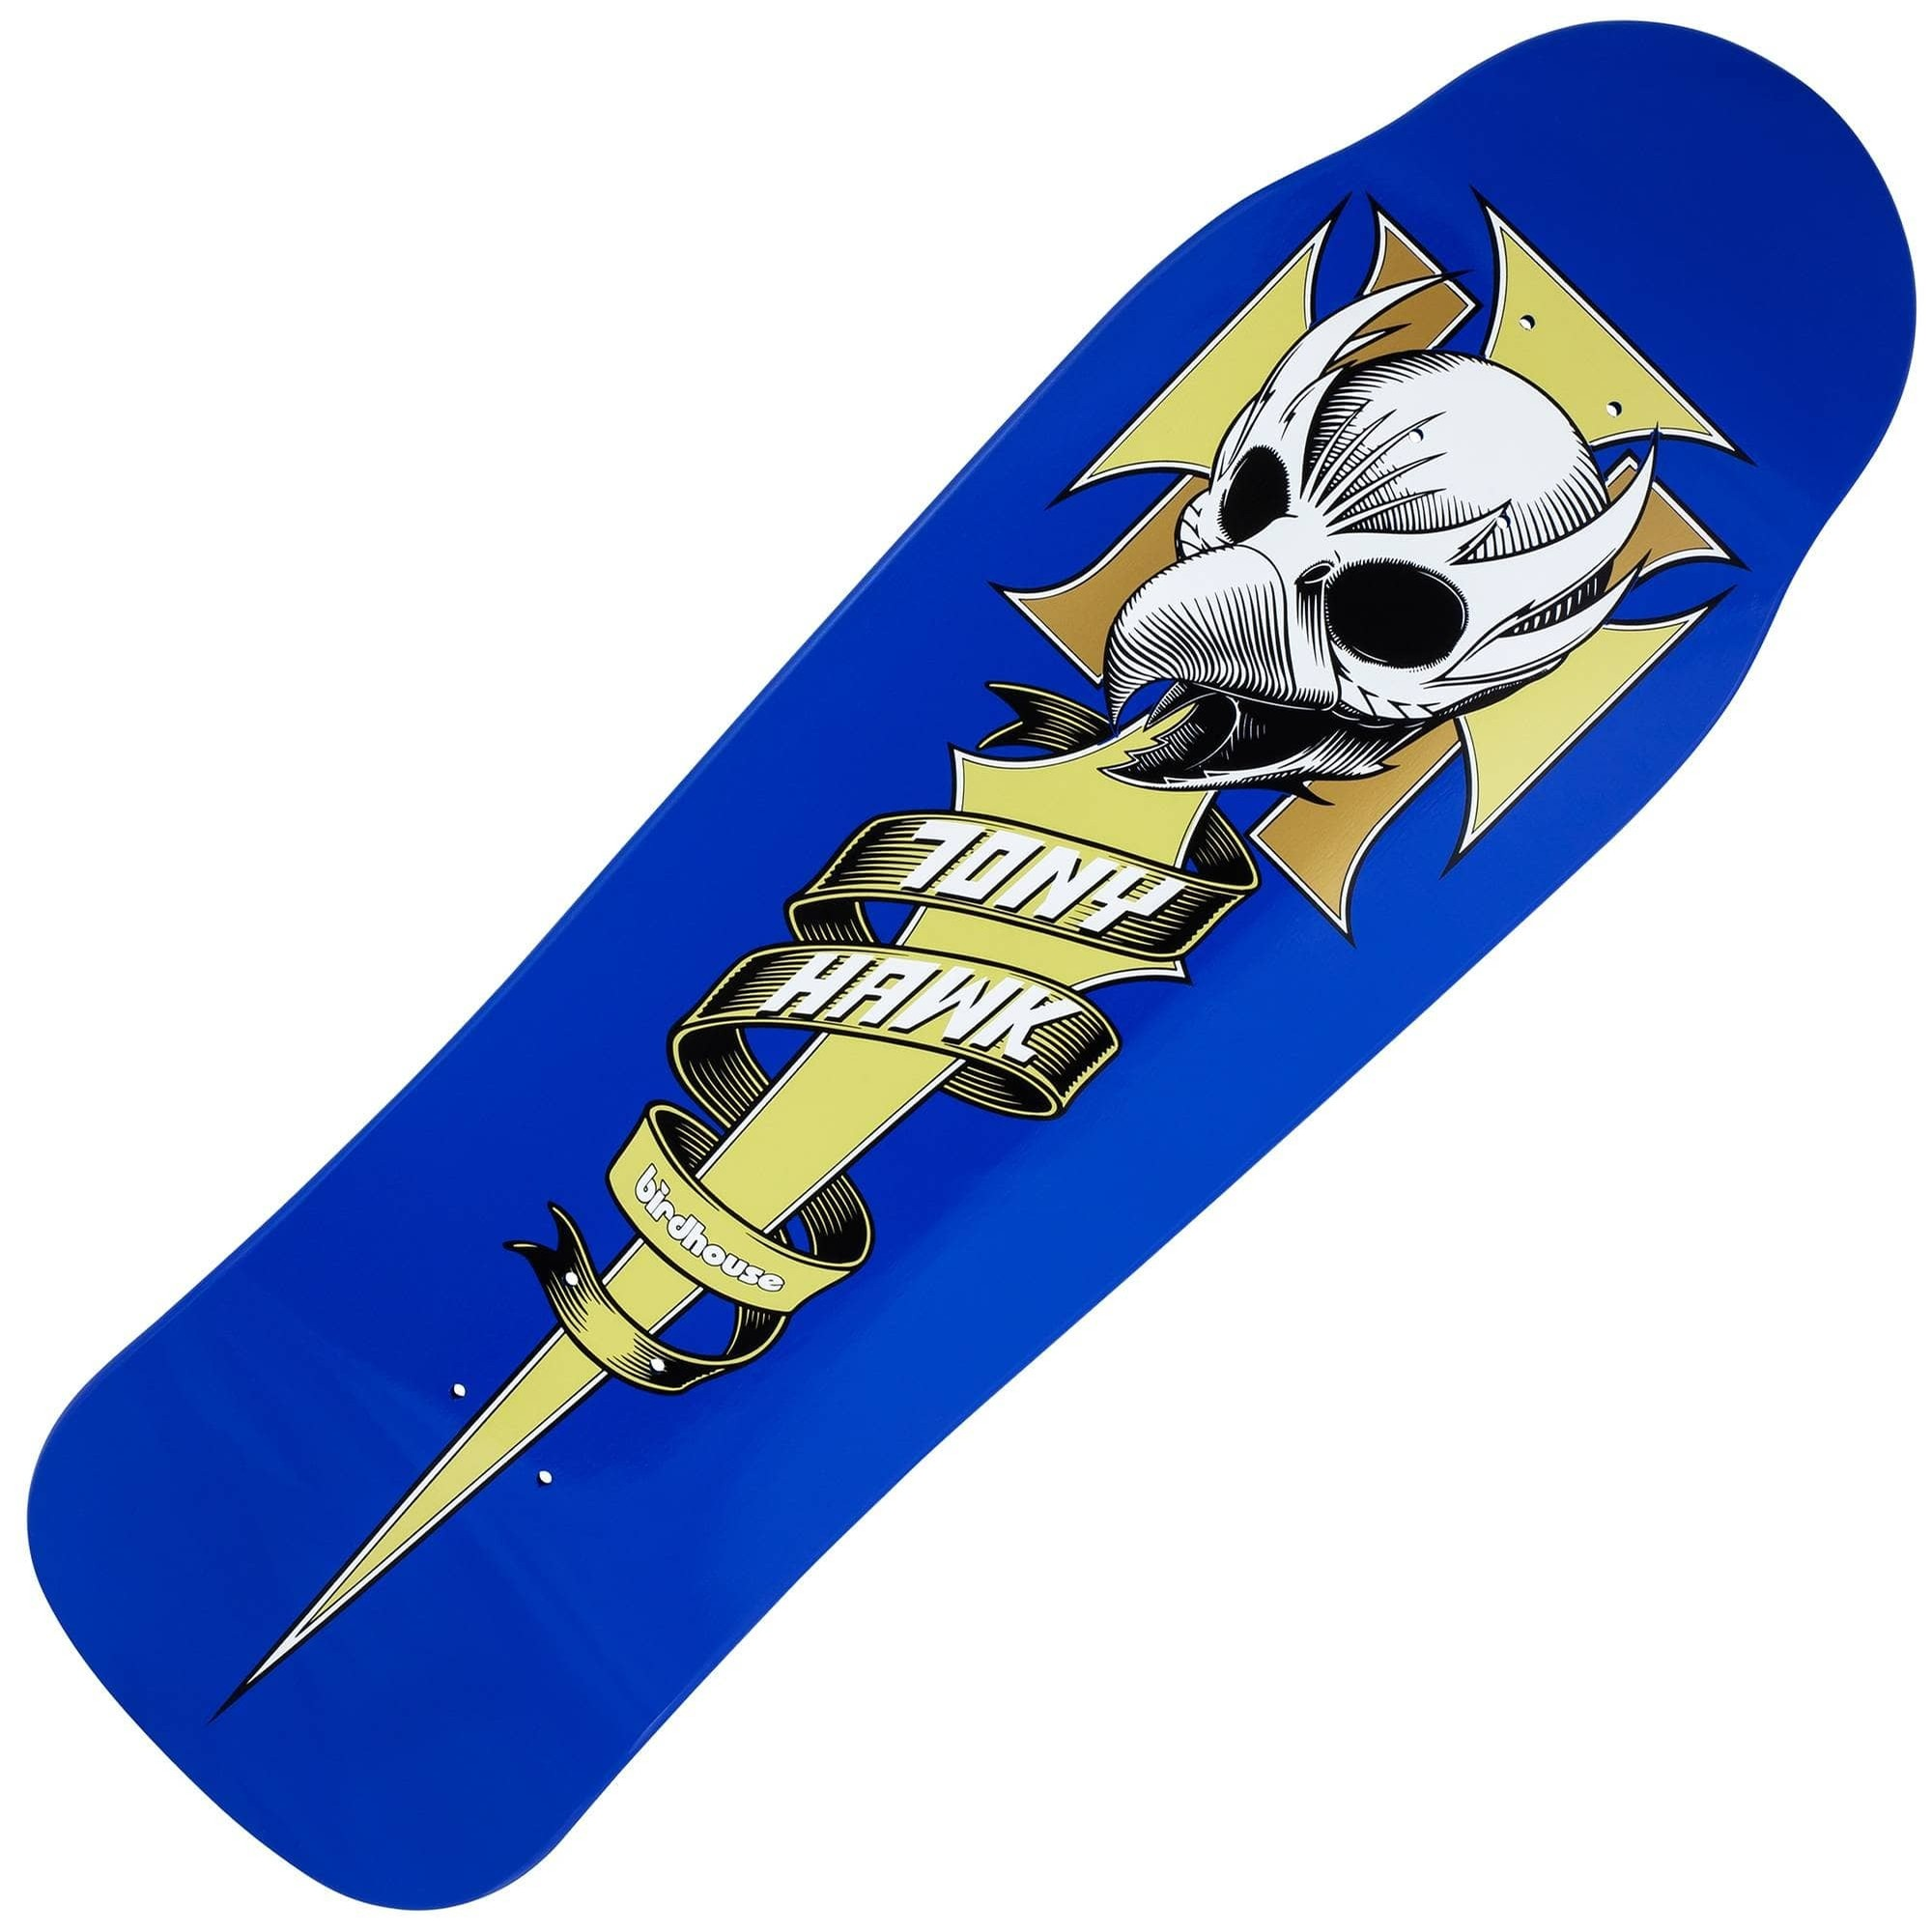 TH Crest Old School Deck